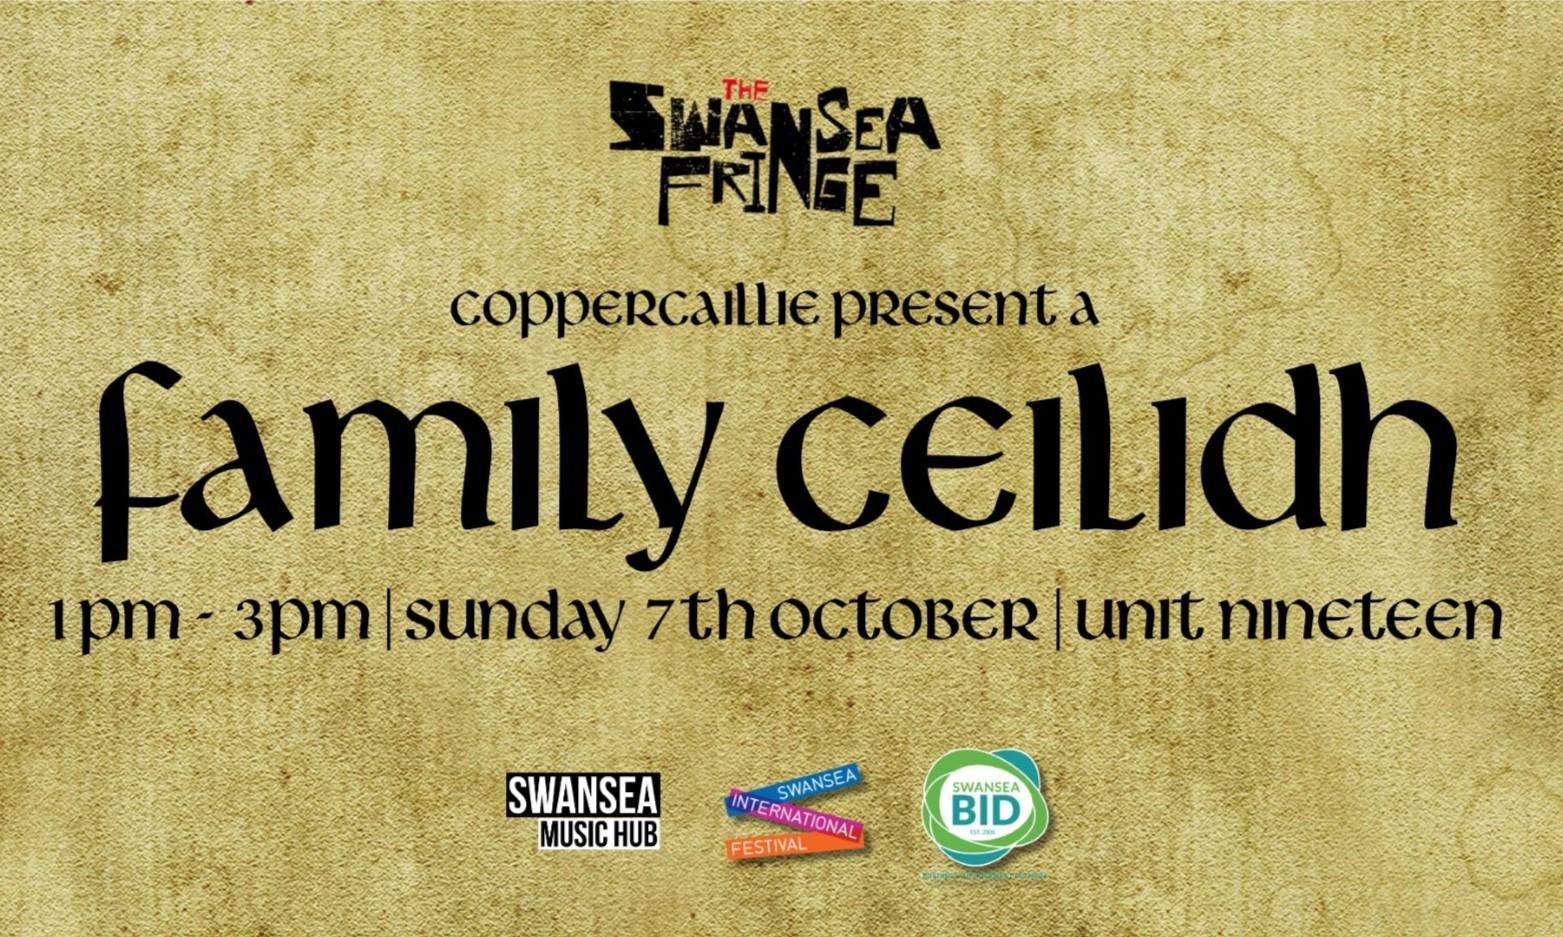 The Swansea Fringe: Family Ceilidh